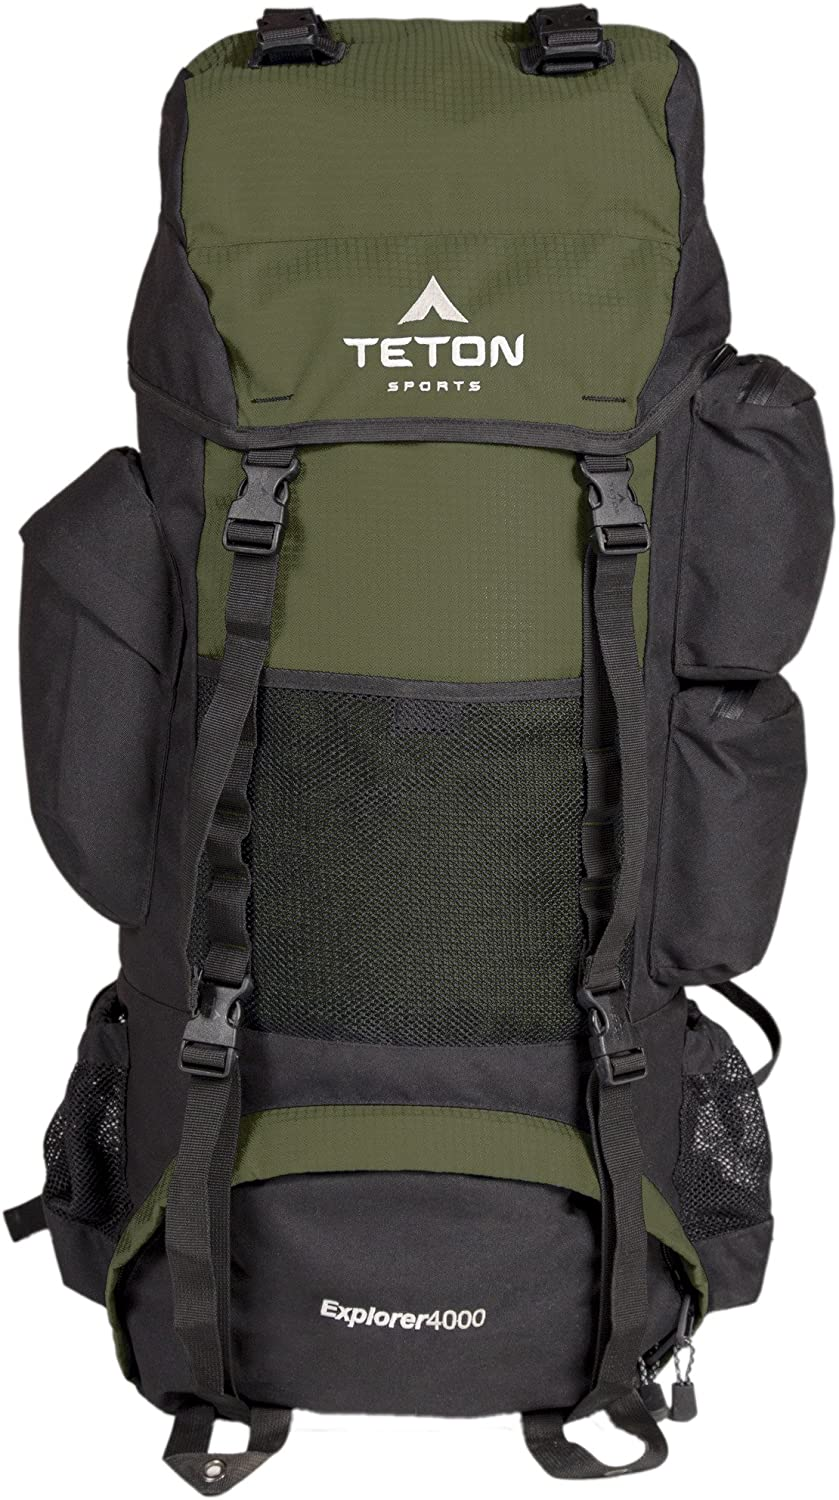 TETON Sports Explorer 4000 Internal Frame Backpack High-Performance Backpack for Backpacking, Hiking, Camping